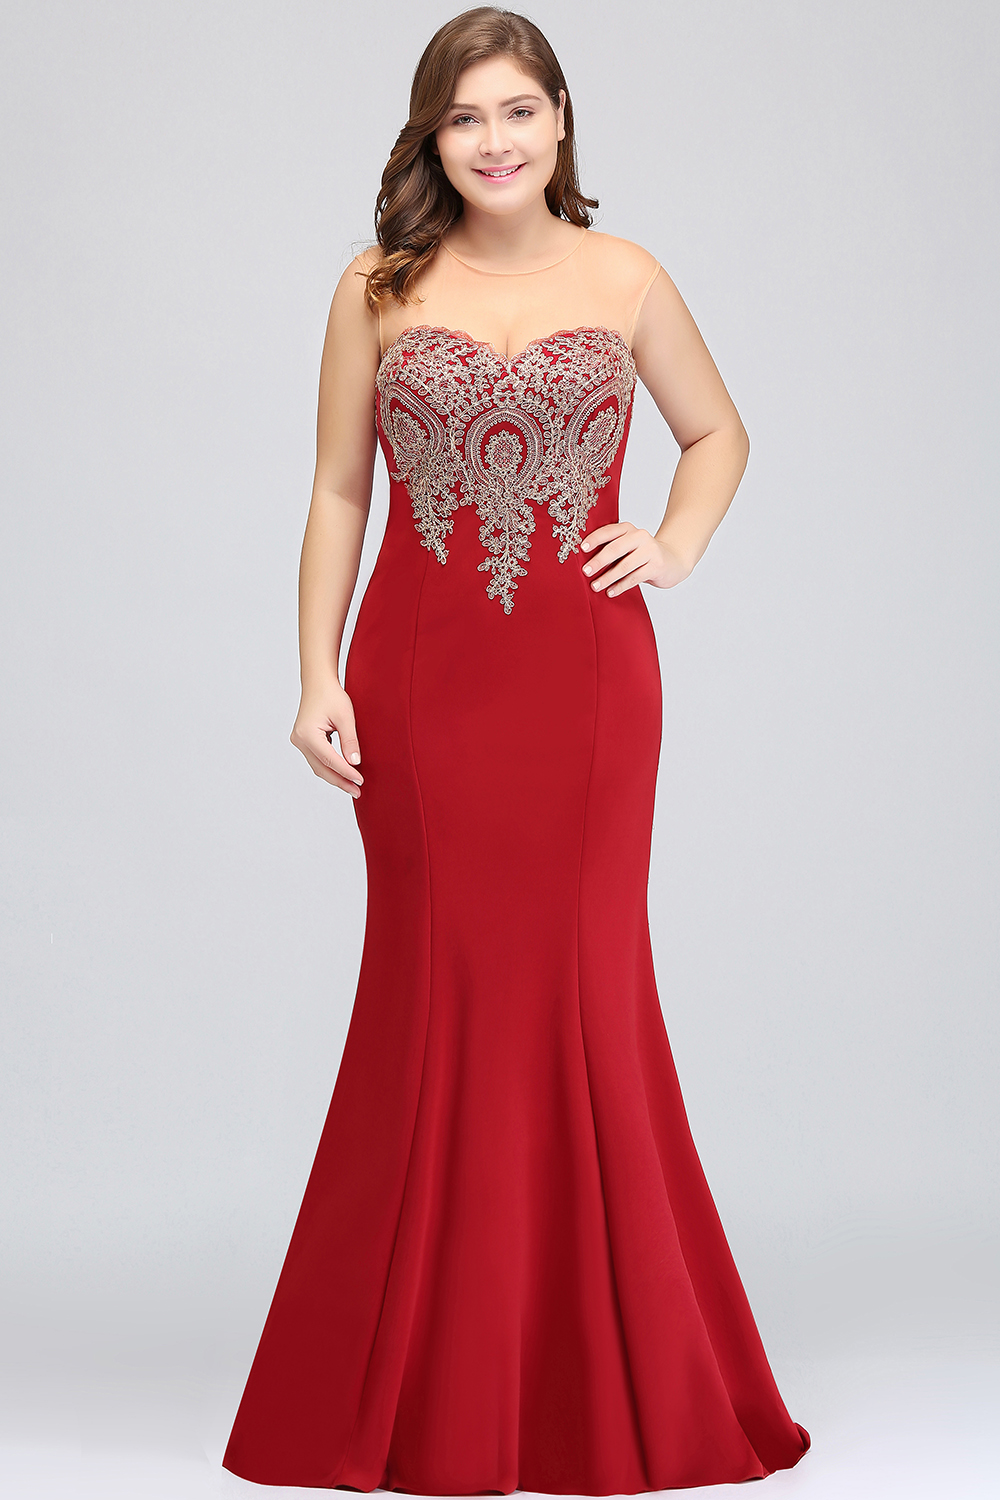 Image 3 - Plus Size Long Evening Dress 2019 Mermaid Formal Dress Party Elegant Evening Gown Sleeveless Applique robe de soiree-in Evening Dresses from Weddings & Events